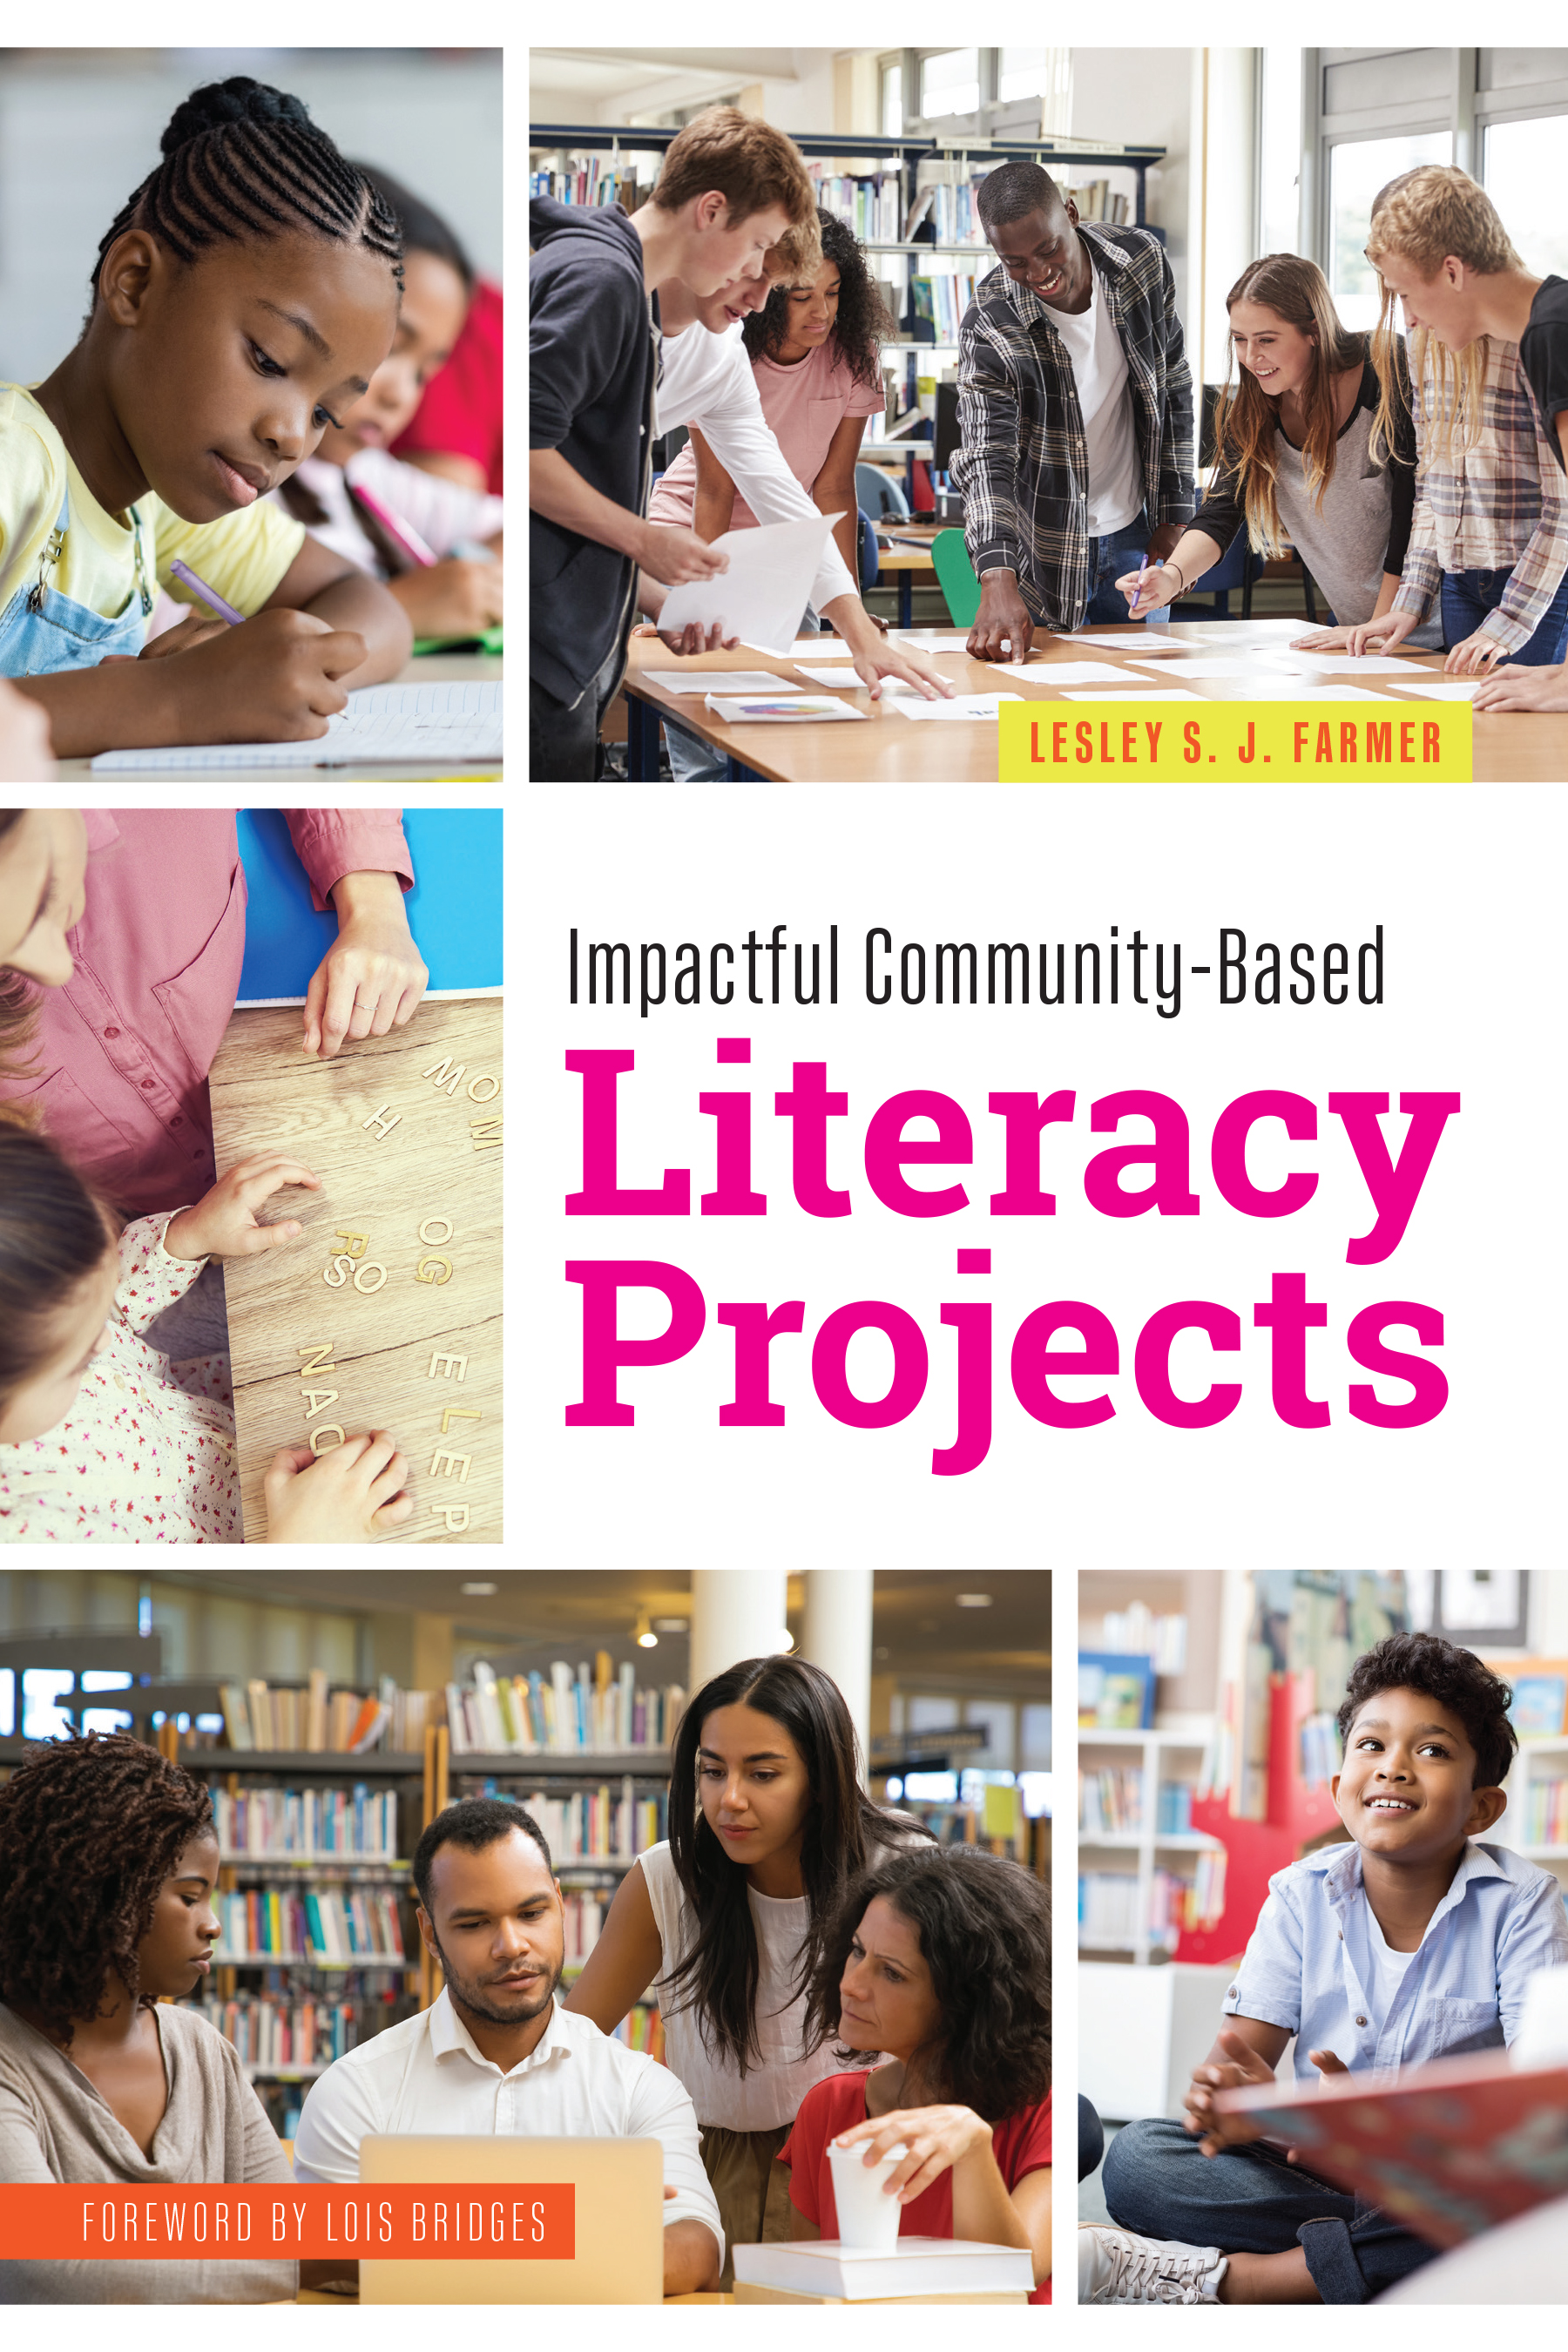 Impactful Community-Based Literacy Projects